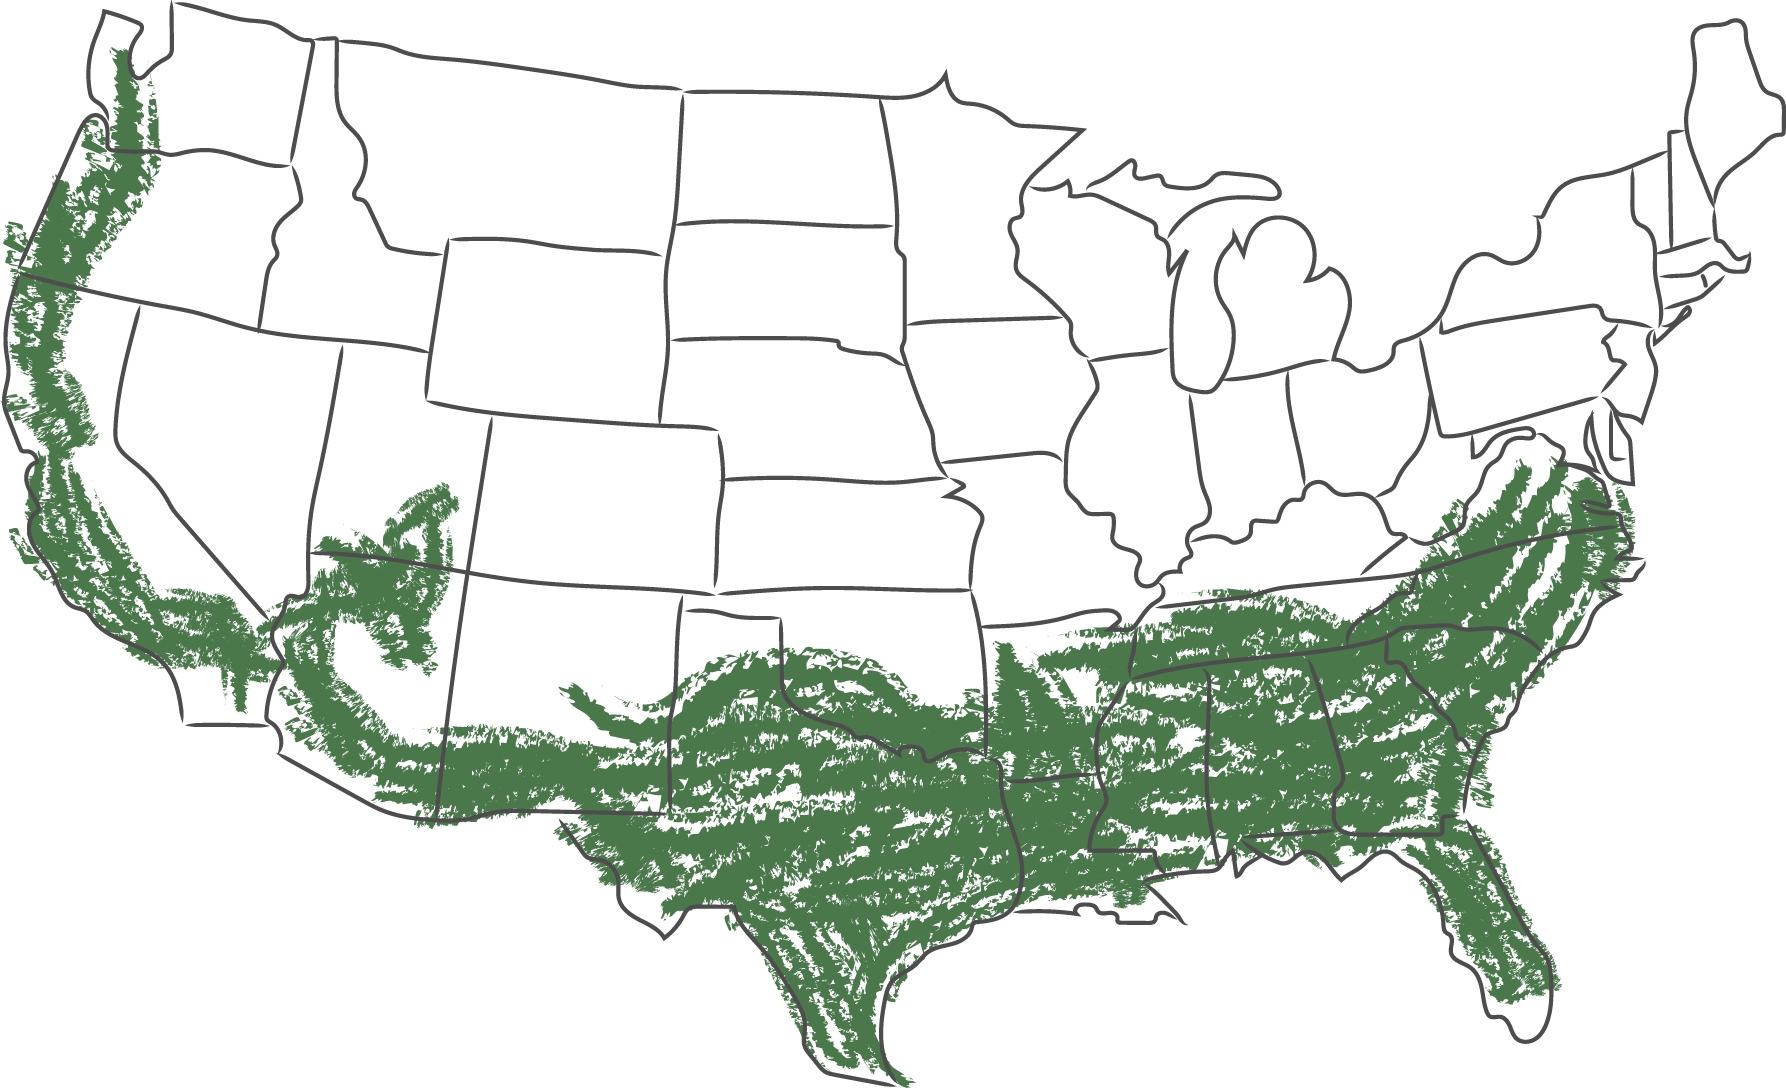 USDA Zones 7-10 highlighted in green on a USA map